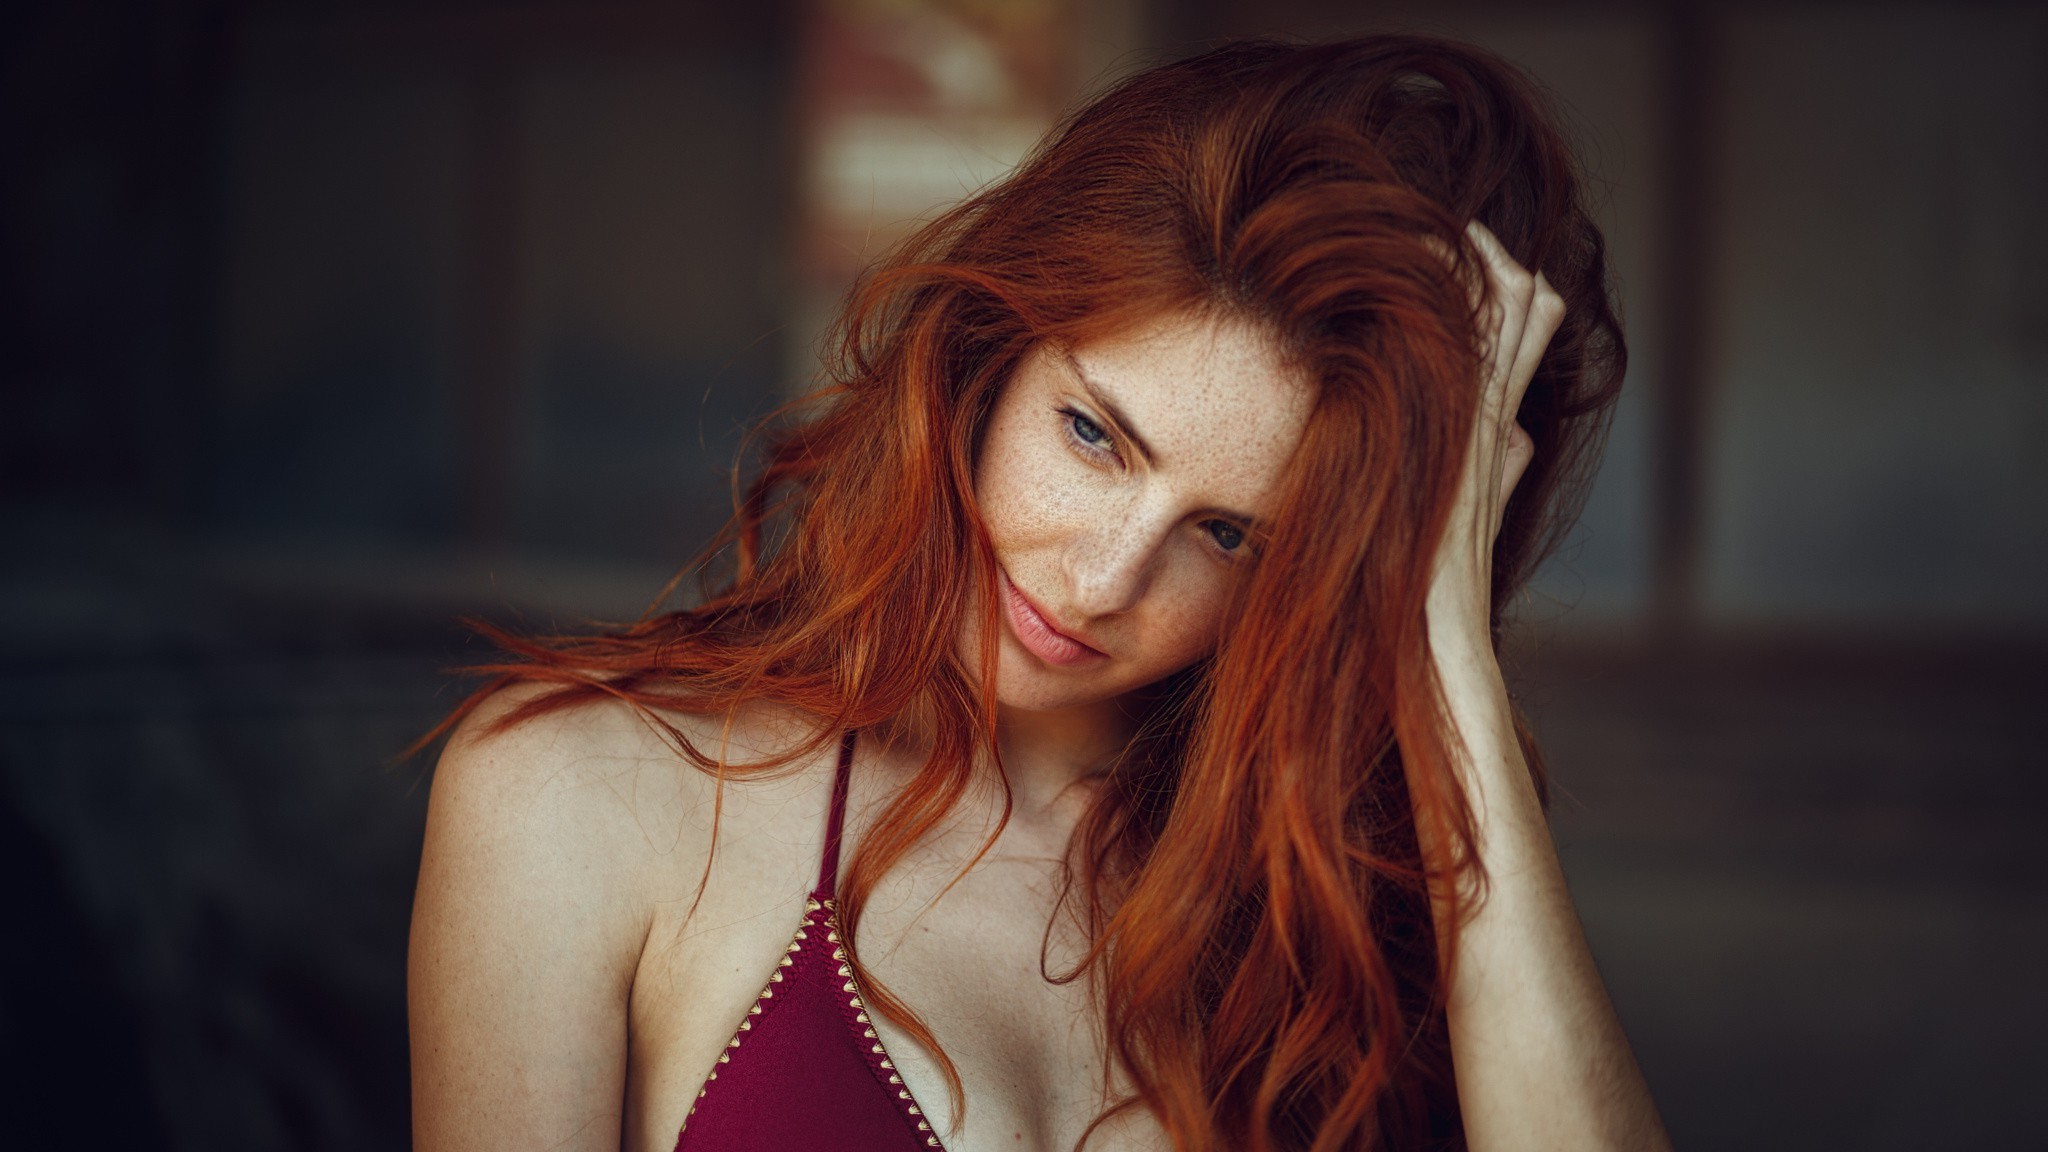 Girl Military Wallpaper 2048x1152 Women Face Freckles Redhead Bra Looking Away Hands